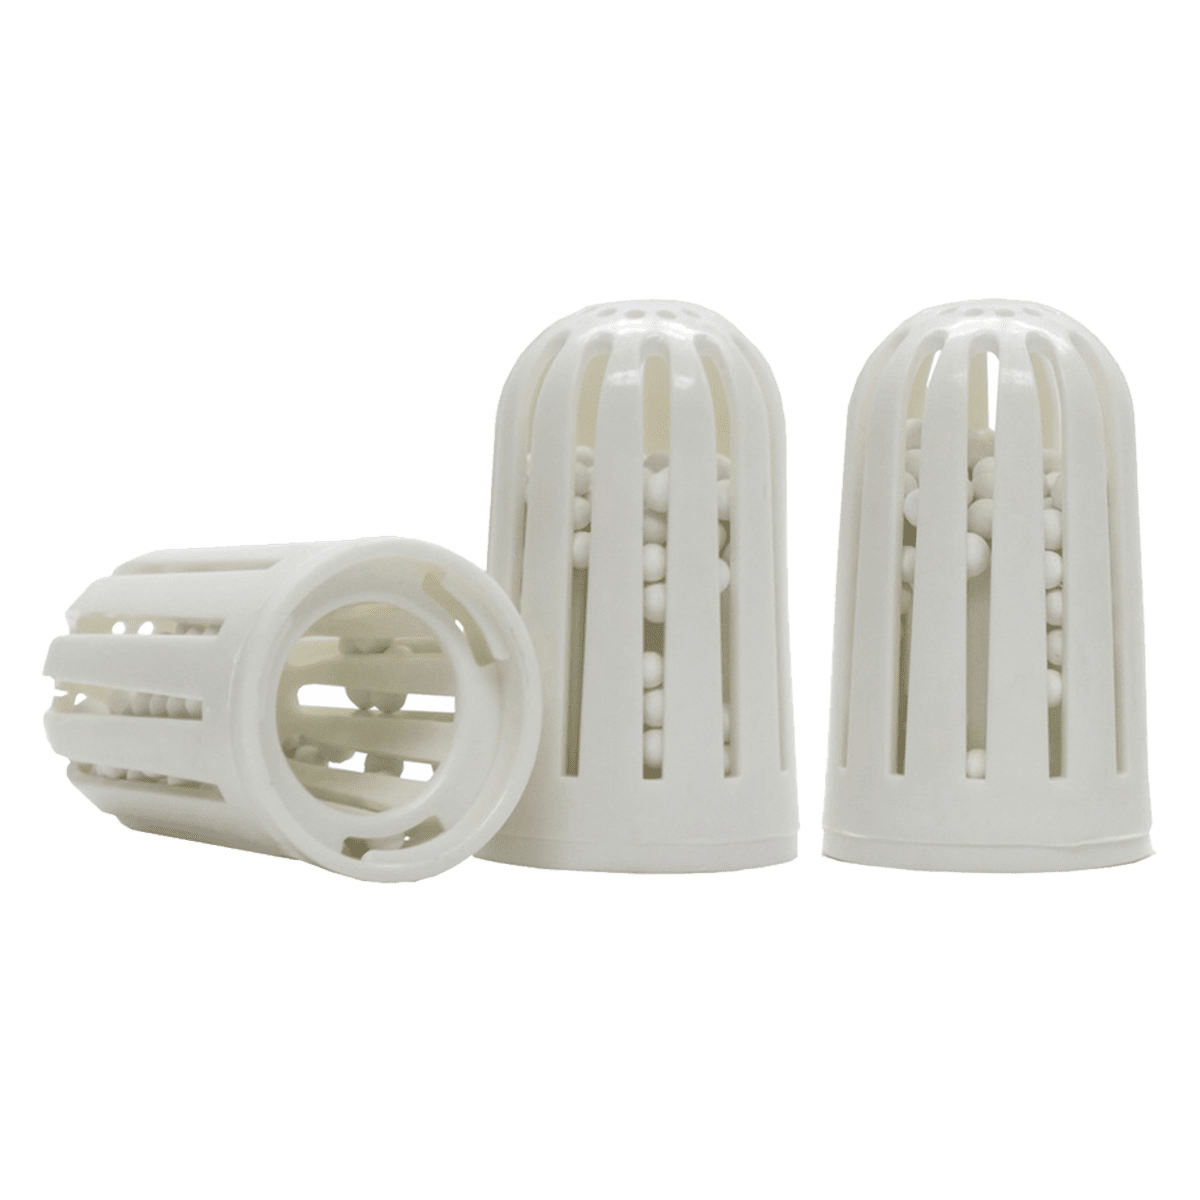 Essick Air Replacement Demineralization Cartridges 3-Pack be7159